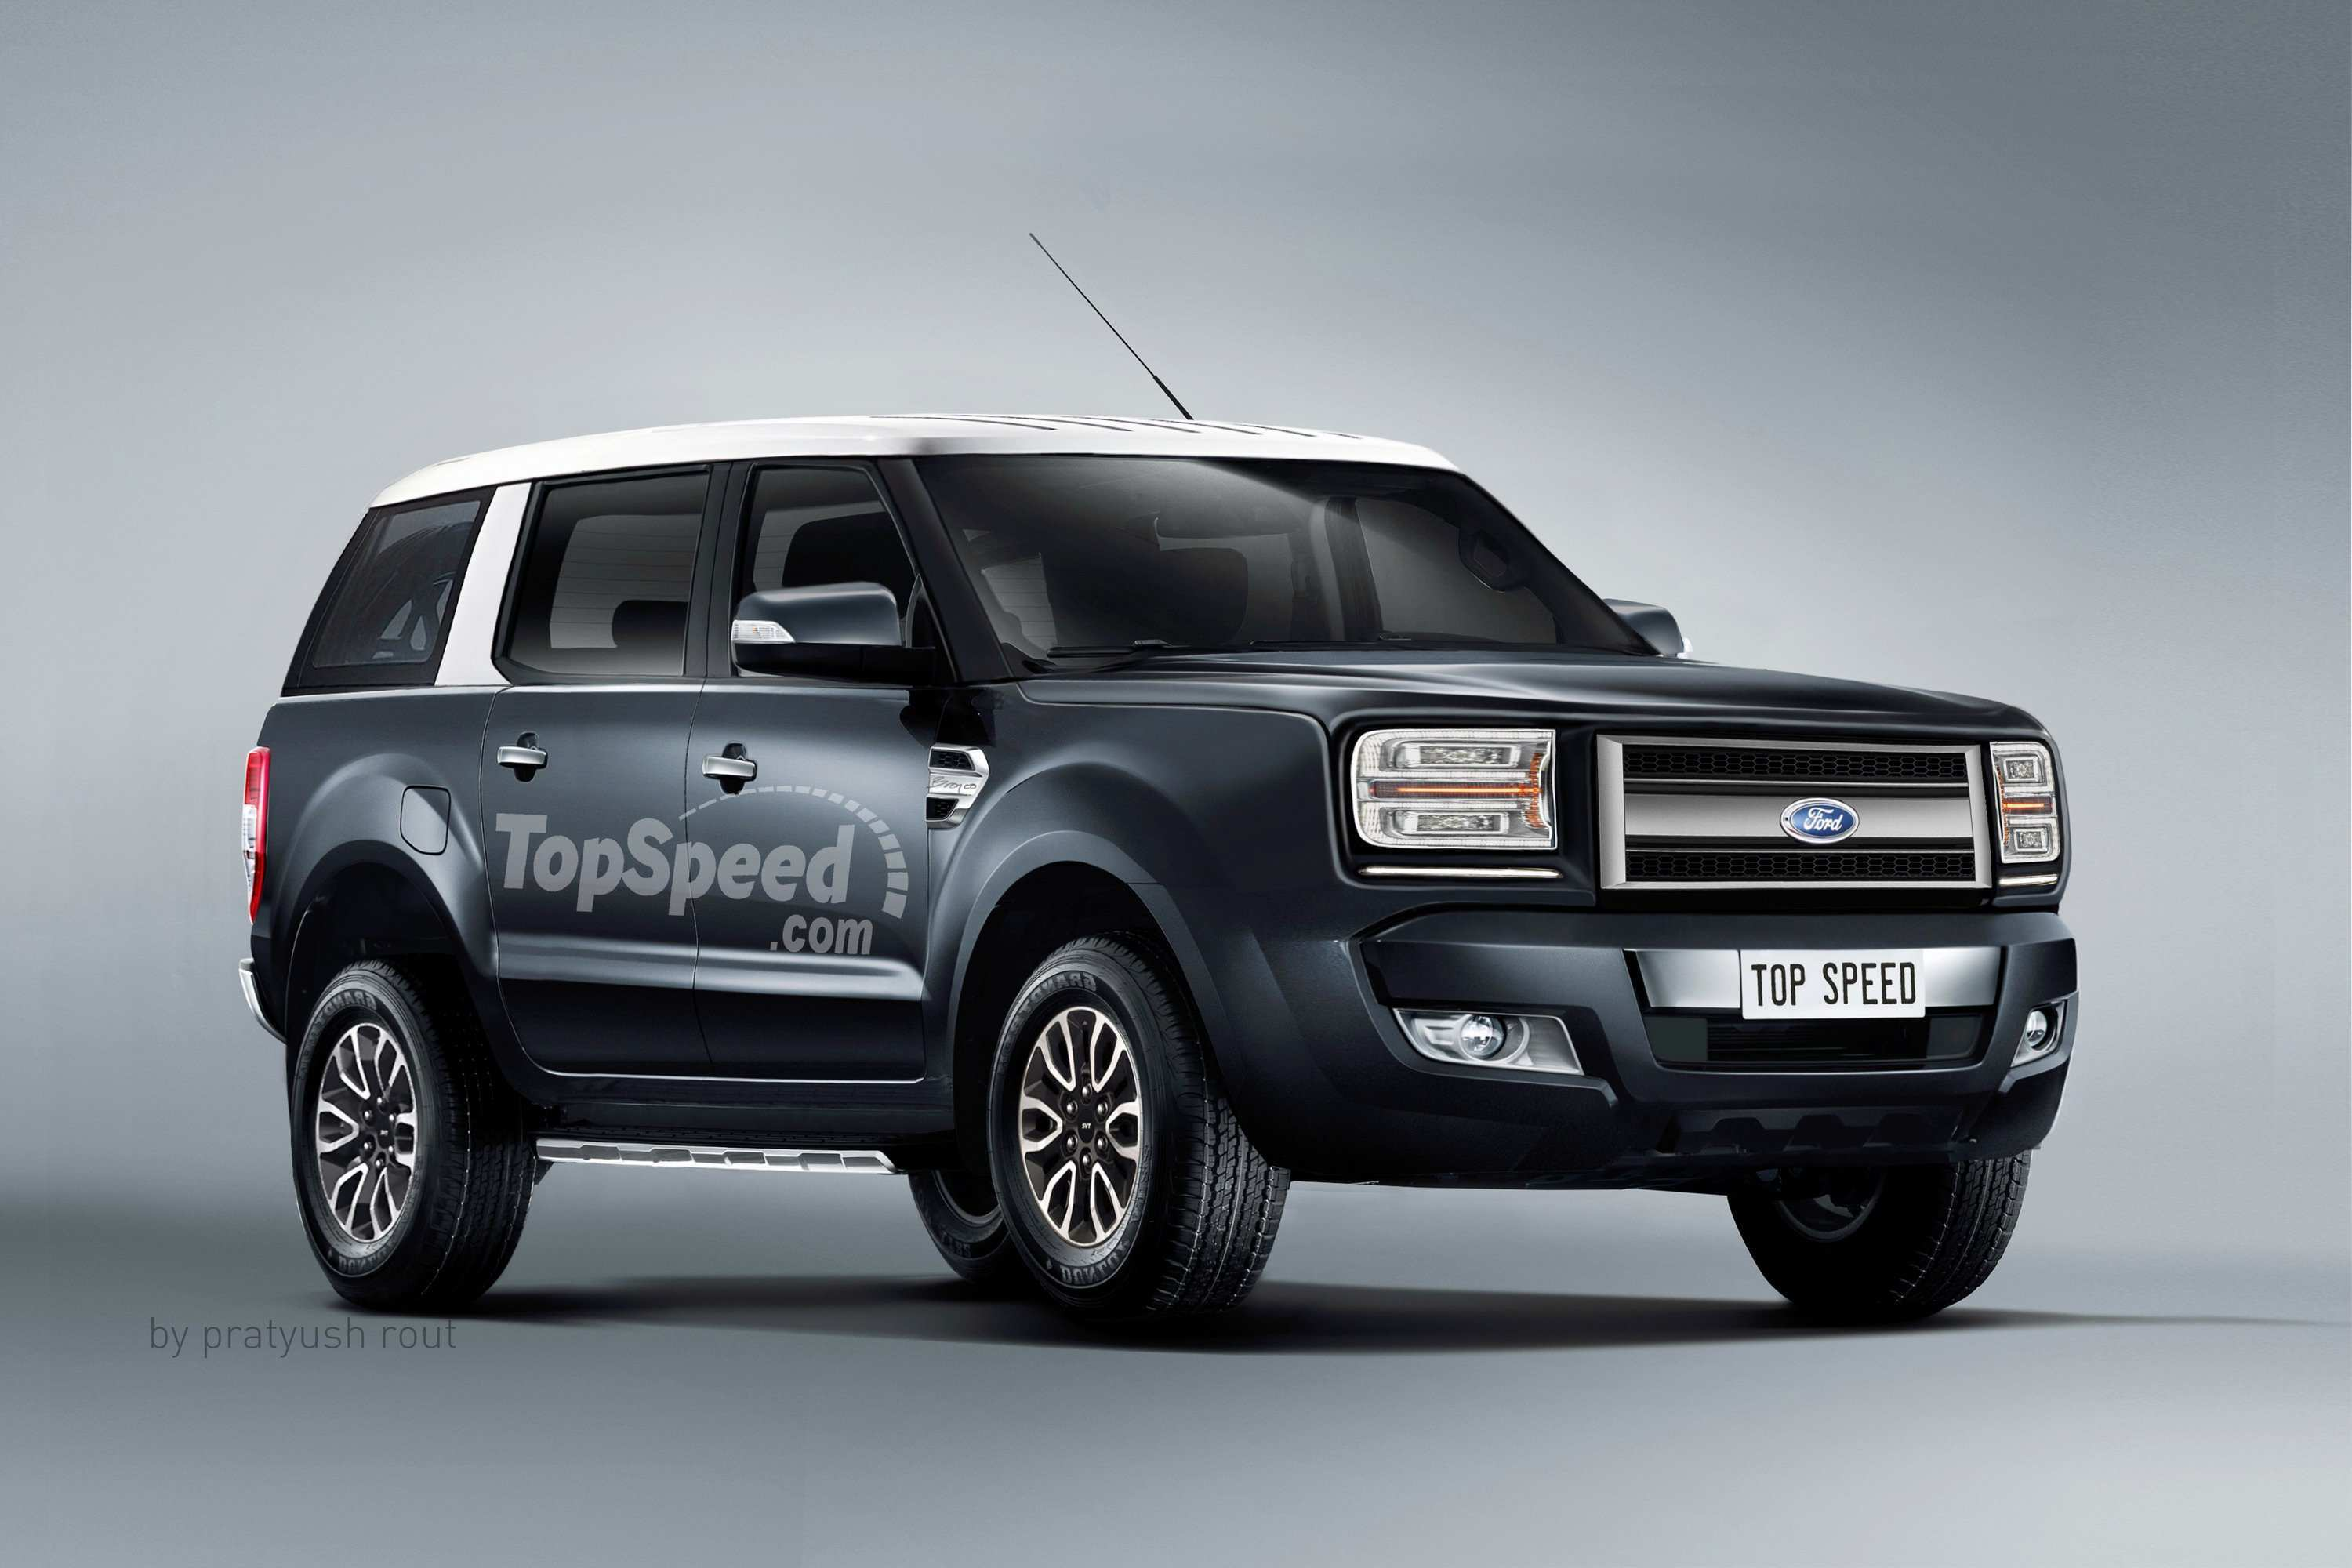 93 All New Ford Bronco 2020 Images Review by Ford Bronco 2020 Images